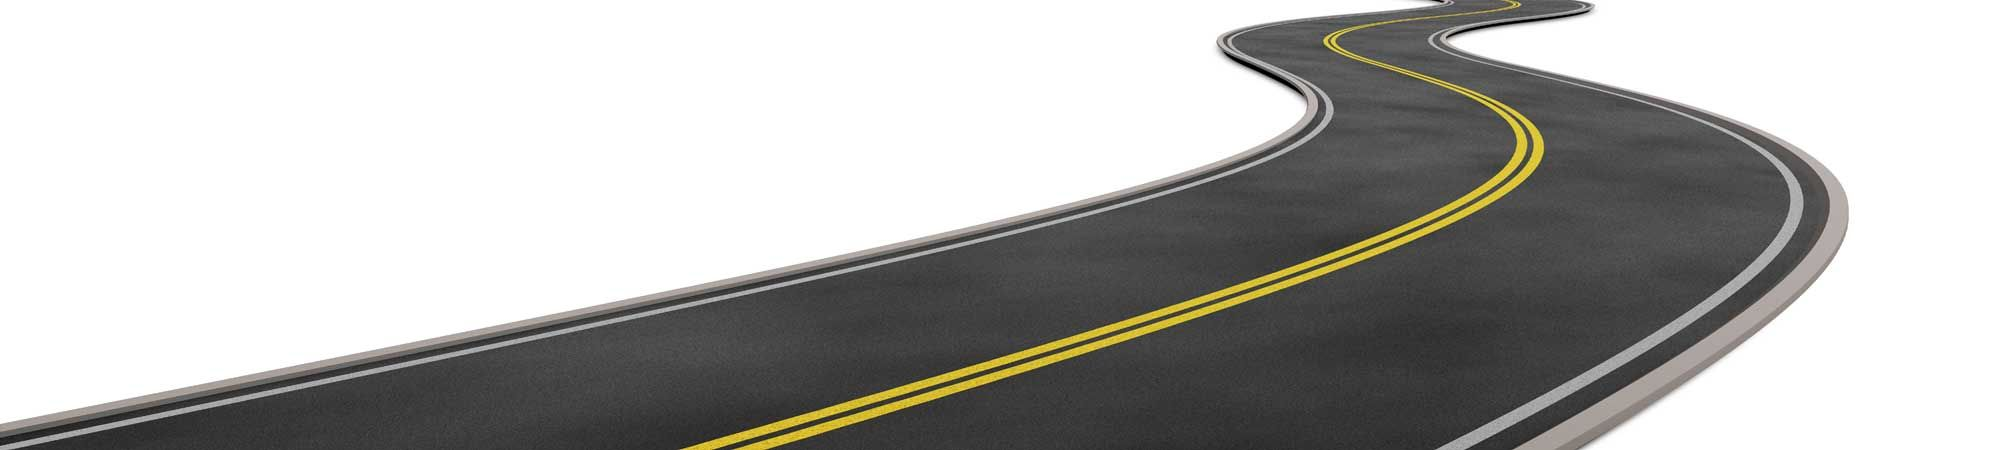 hight resolution of curve road clipart curve road clipart curved road